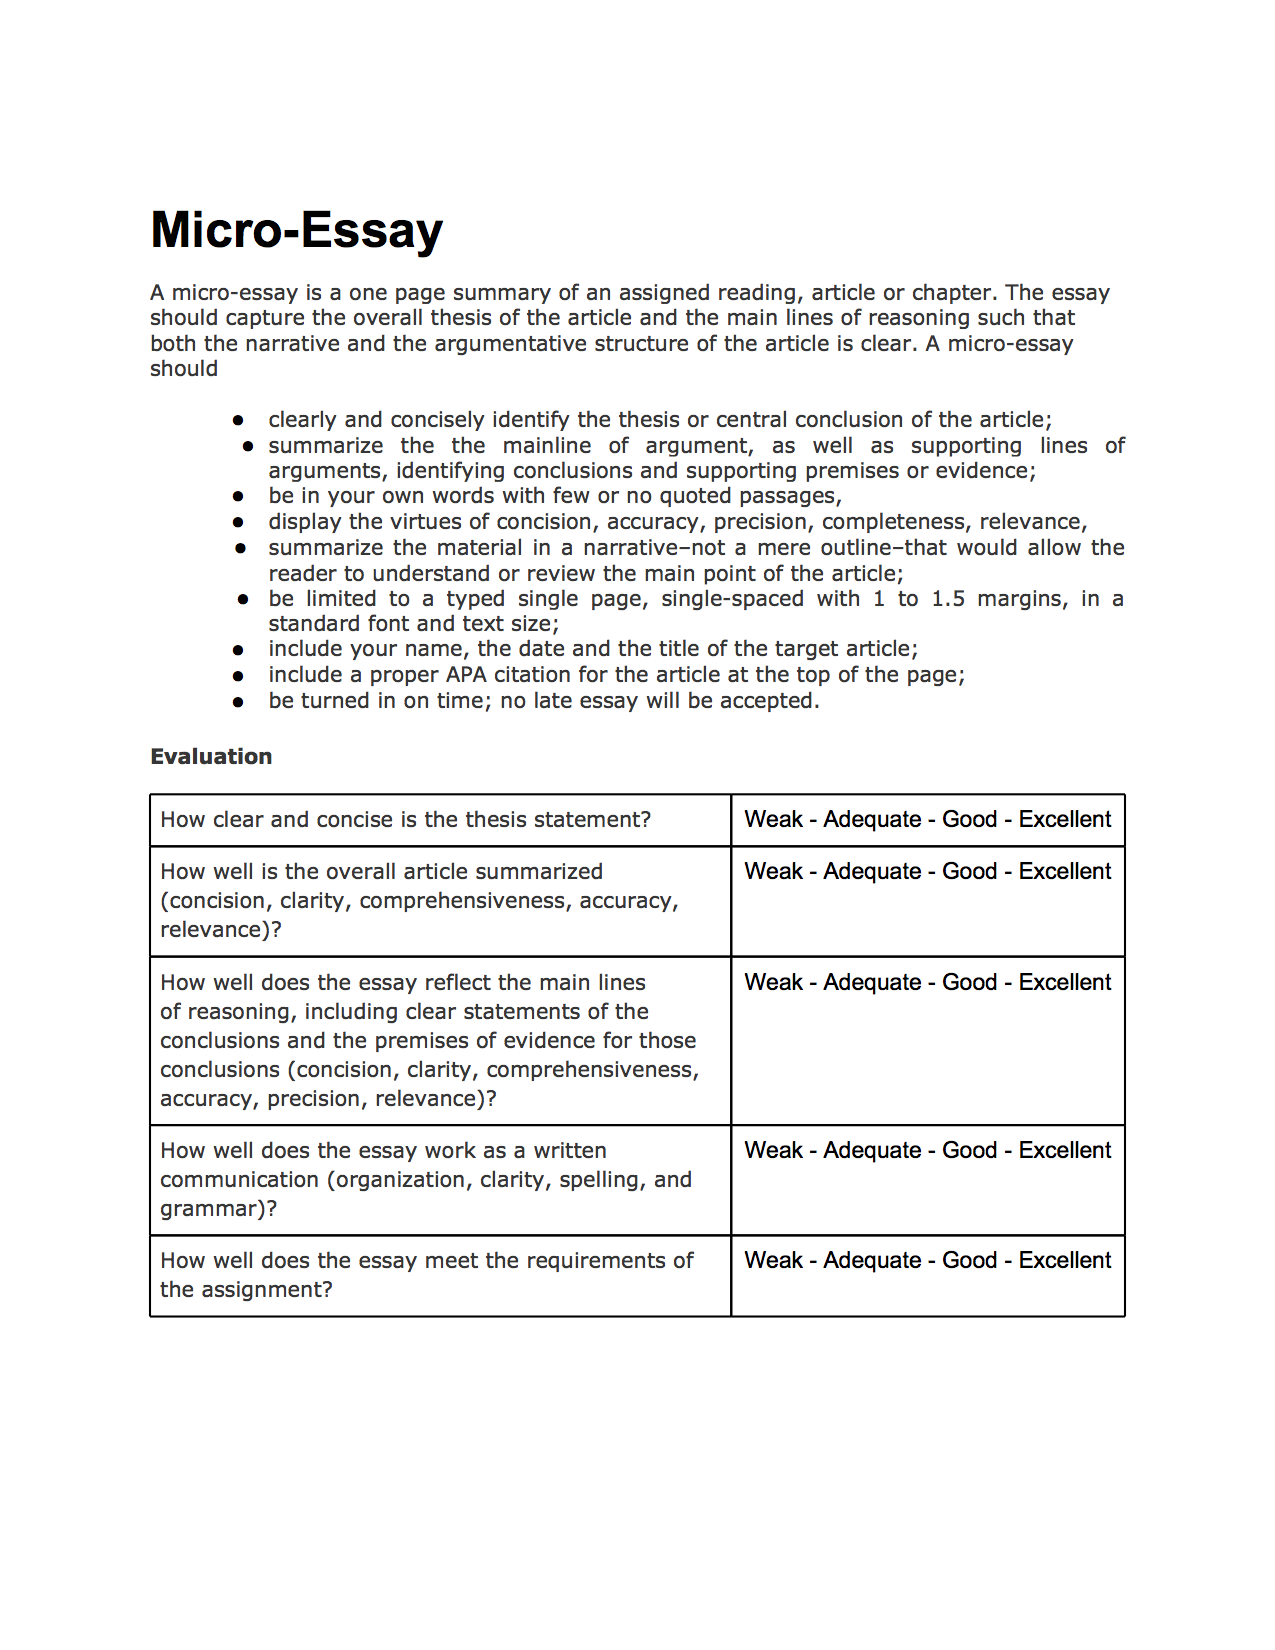 grammar essays micro essays darwin and philosophy cover letter  micro essays darwin and philosophy micro essays cover letter short story essays examples